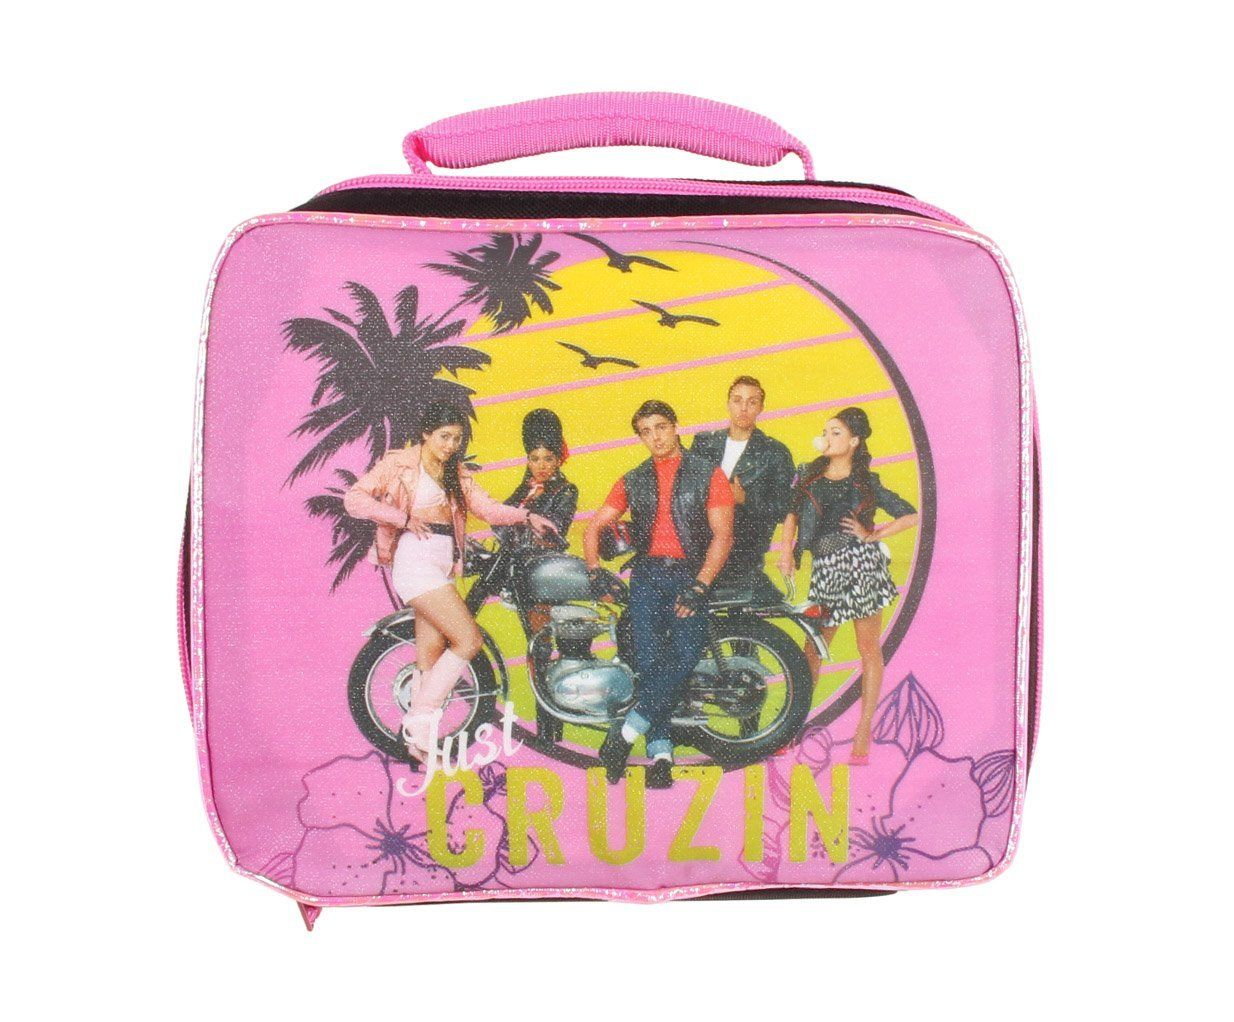 Teen Beach Movie Lunch Bag | Cool Lunch Box and Lunch Bag ...